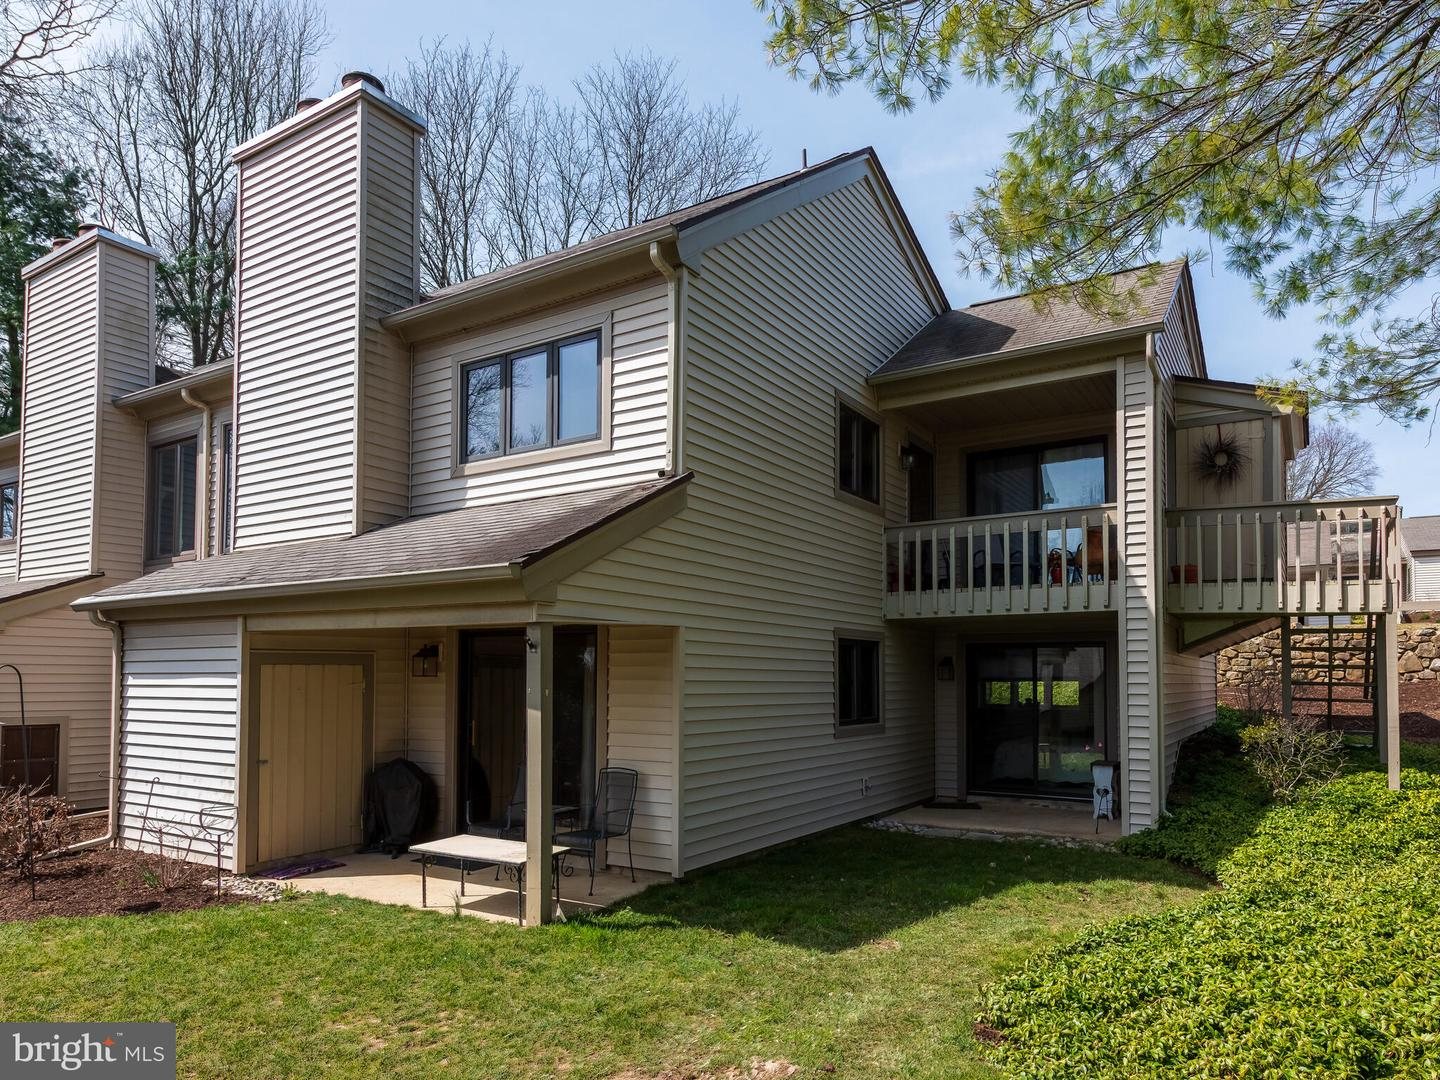 63 Ashton Way West Chester , PA 19380